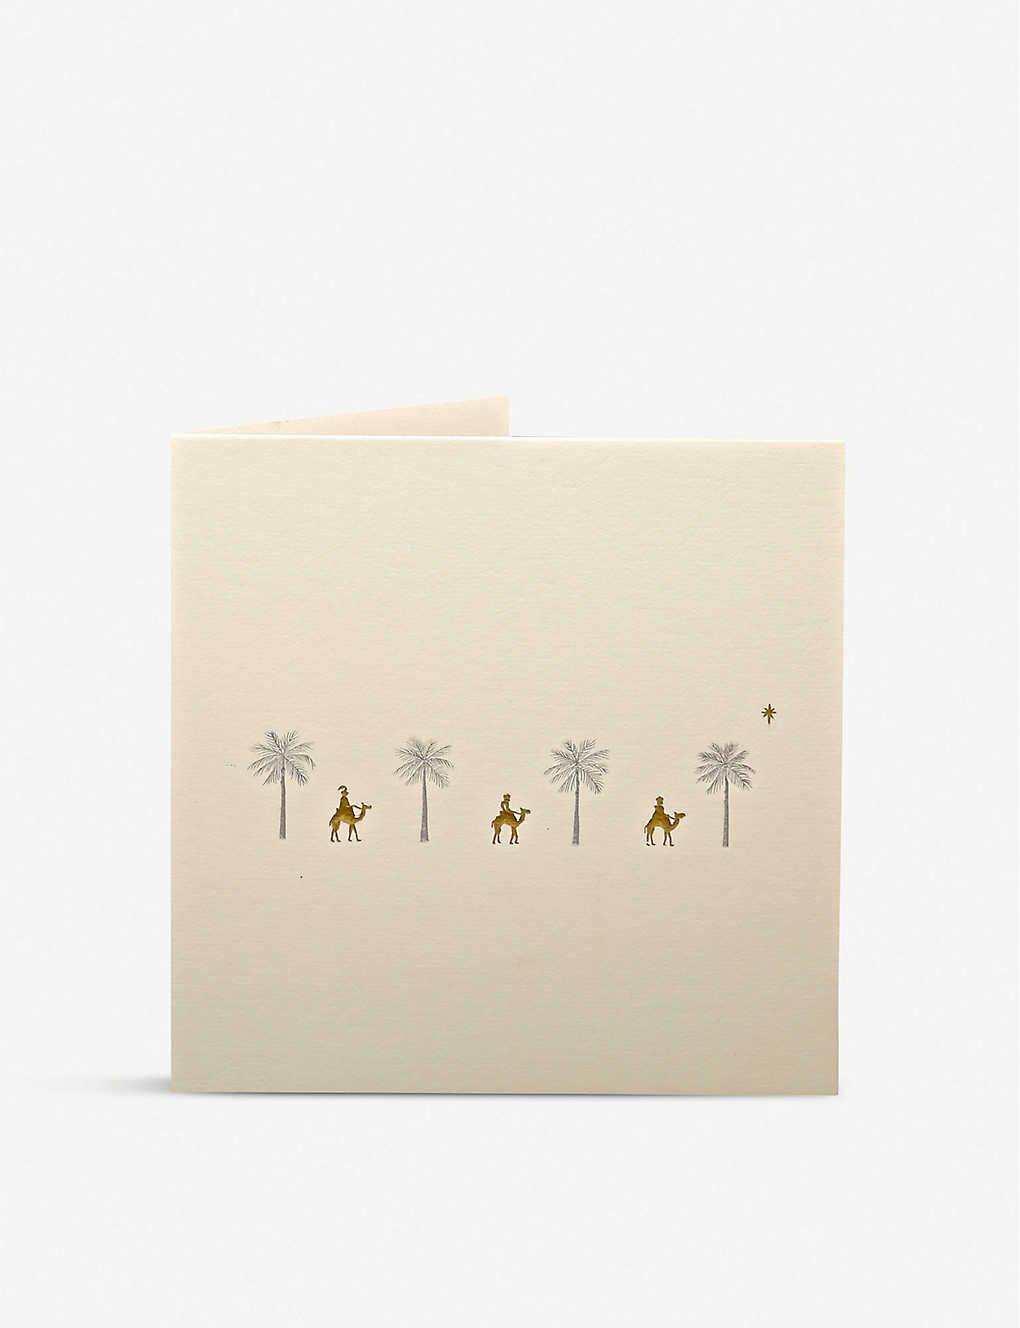 JULIE BELL: Pack of 10 Three Kings greetings cards 14.8cm x 14.8cm